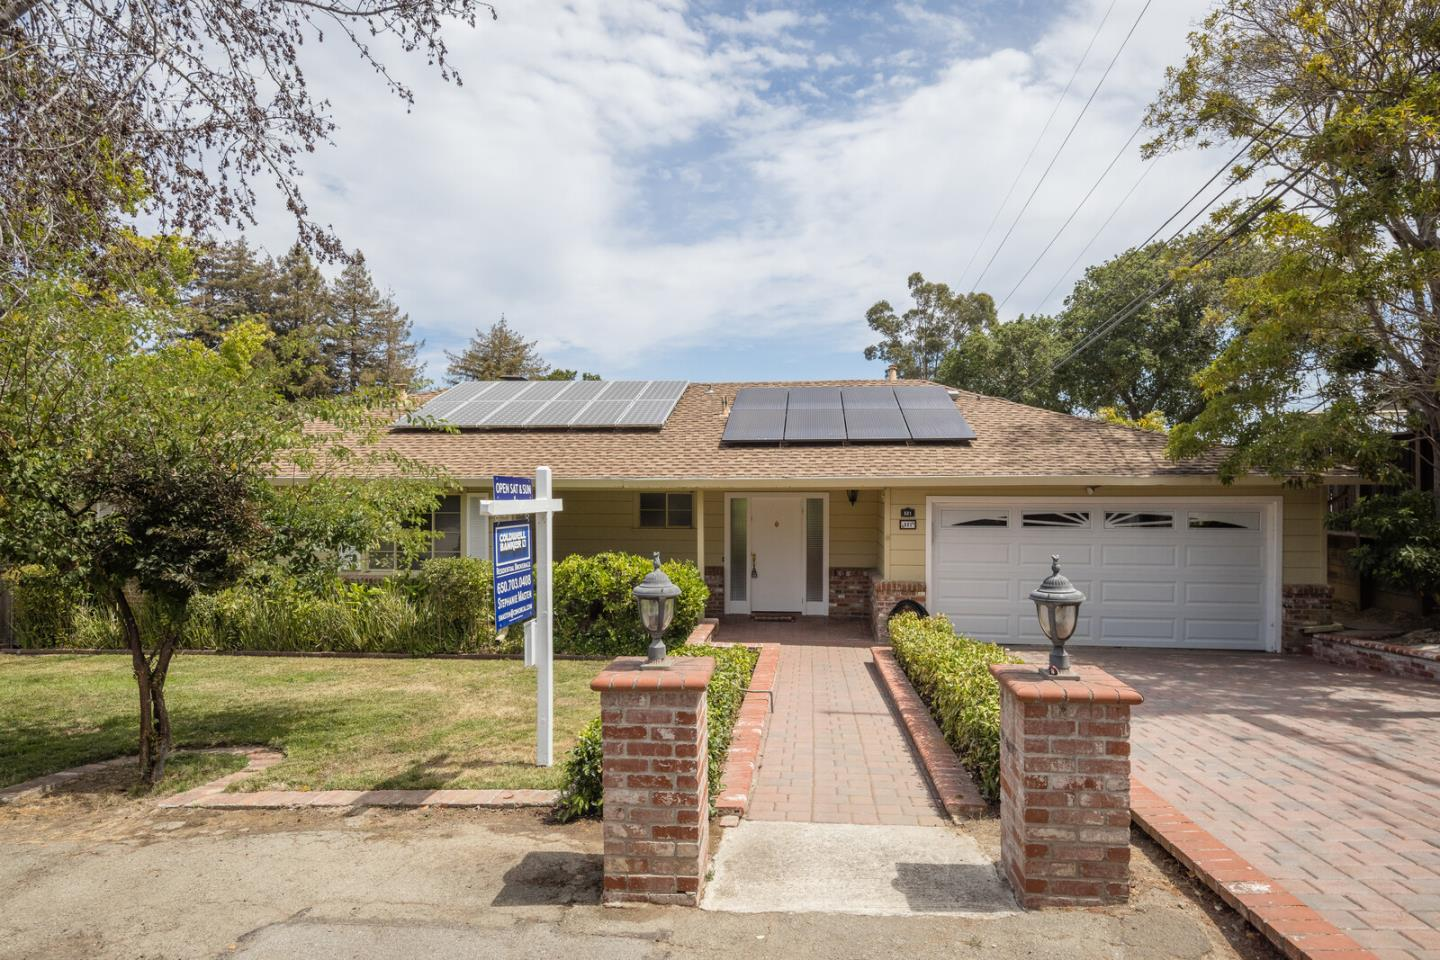 Prime Baywood Highlands location - adjacent to Hillsborough!  Three Bedrooms, 3 bath ranch-stye home situated on a mostly level 12,000 square foot flat lot!  Home is surrounded by a beautiful in-ground fiberglass pool, mature trees, plants, and shrubs.  Inviting living room/dining room with picture windows and floor to ceiling brick fireplace.  Hardwood floors throughout.  The all-electric eat-in kitchen features custom wood cabinetry and bamboo floors and leads to a wood deck.  This home has lots of potential!  Don't miss the Bonus Room close to the pool which has a full bath and central heating.  The home comes with solar roof panels, two car attached garage, and side access to the Bonus Room.  Minutes from highly-rated schools, and minutes from downtown San Mateo shops, restaurants, and Central Park.  A must-see!